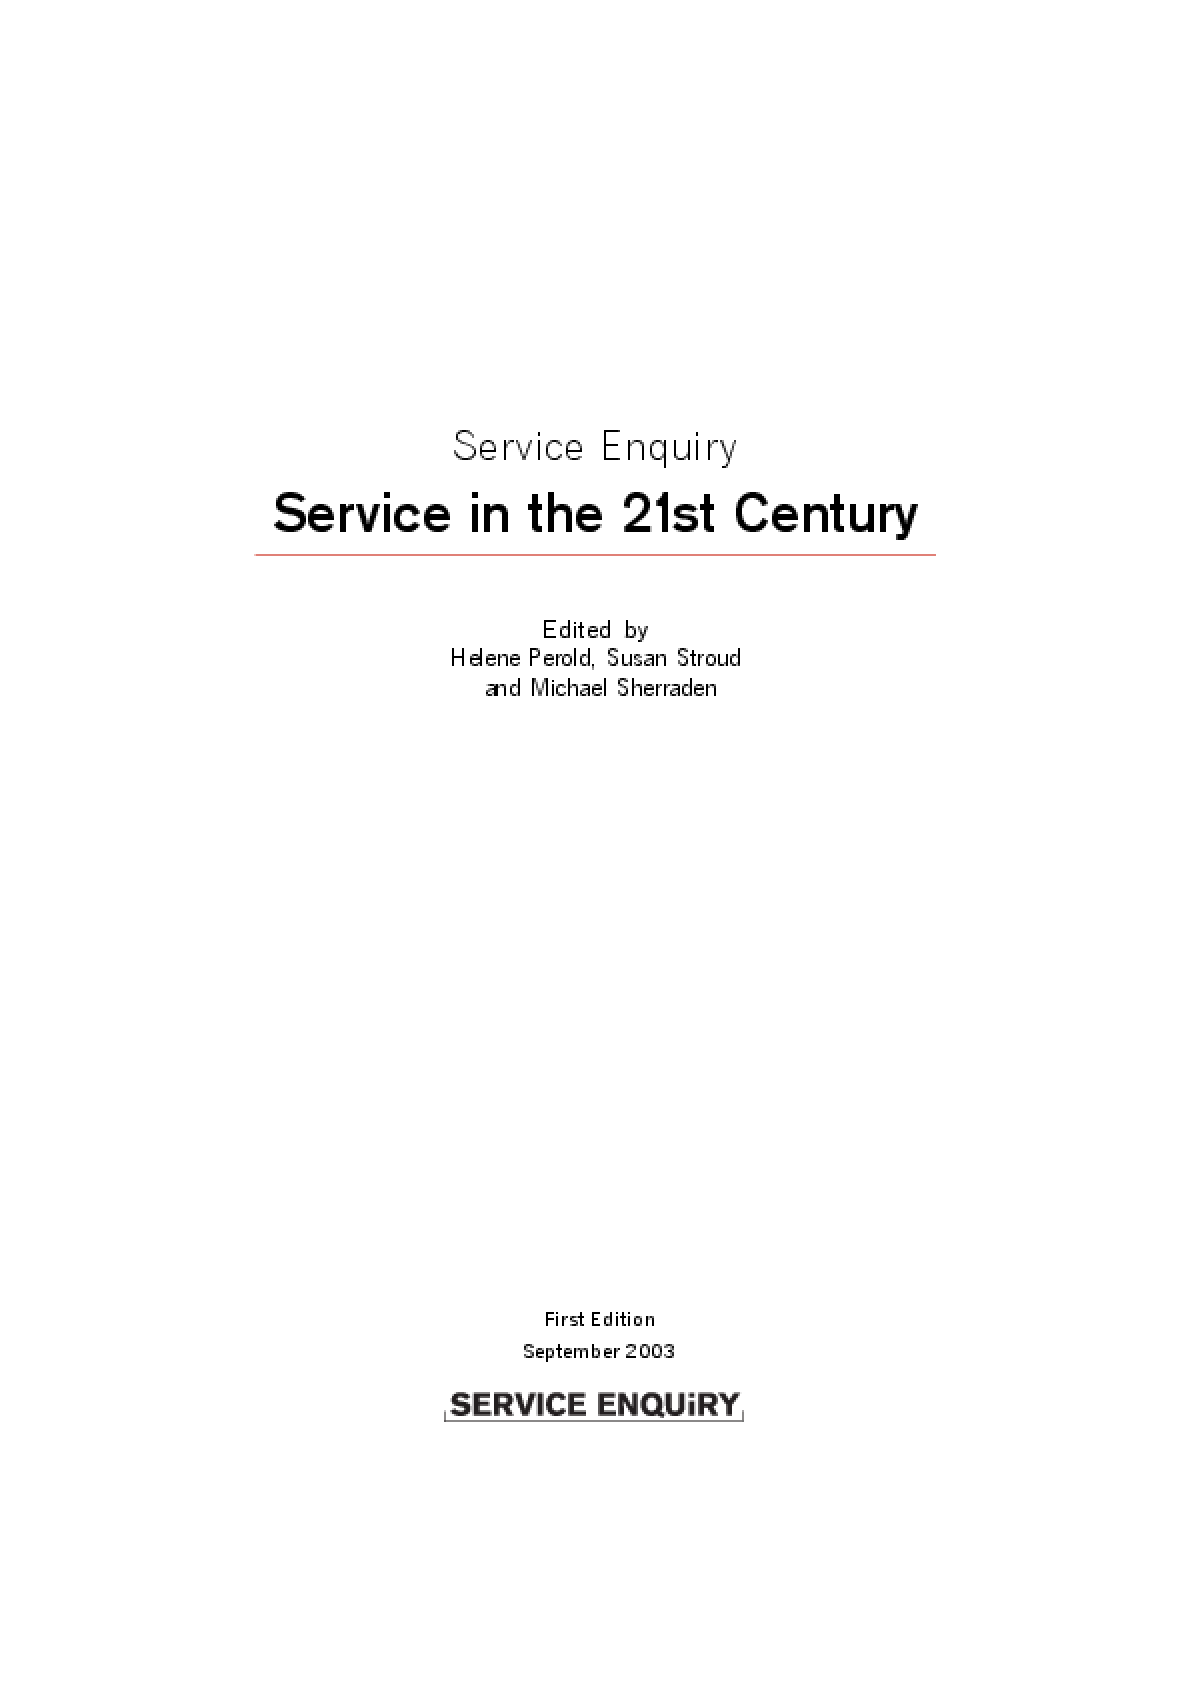 Service Enquiry Service in the 21st Century